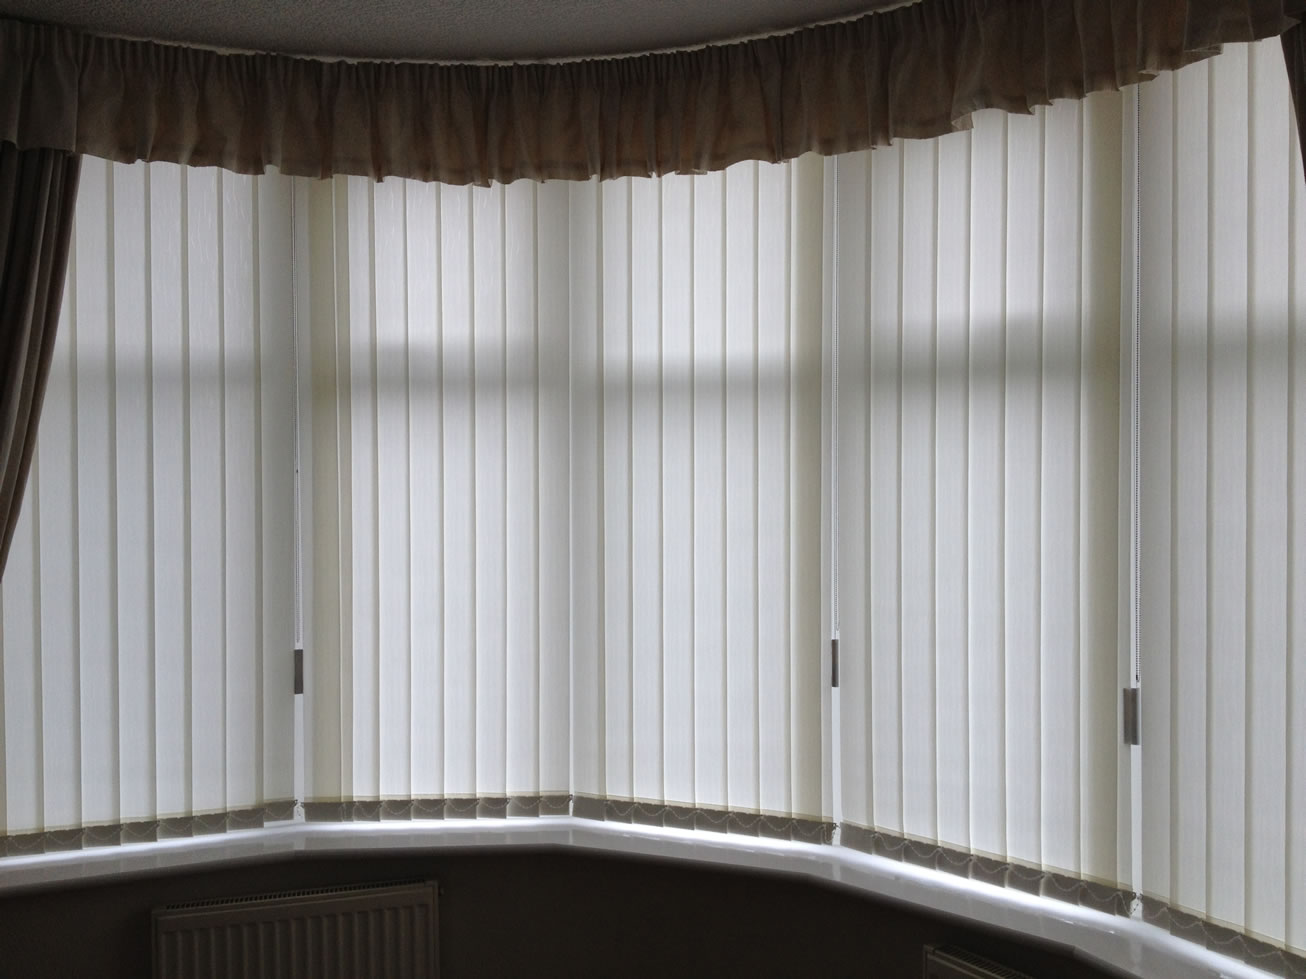 Window Decor With White Levolor Blinds Plus Curtains For Home Interior Design Ideas